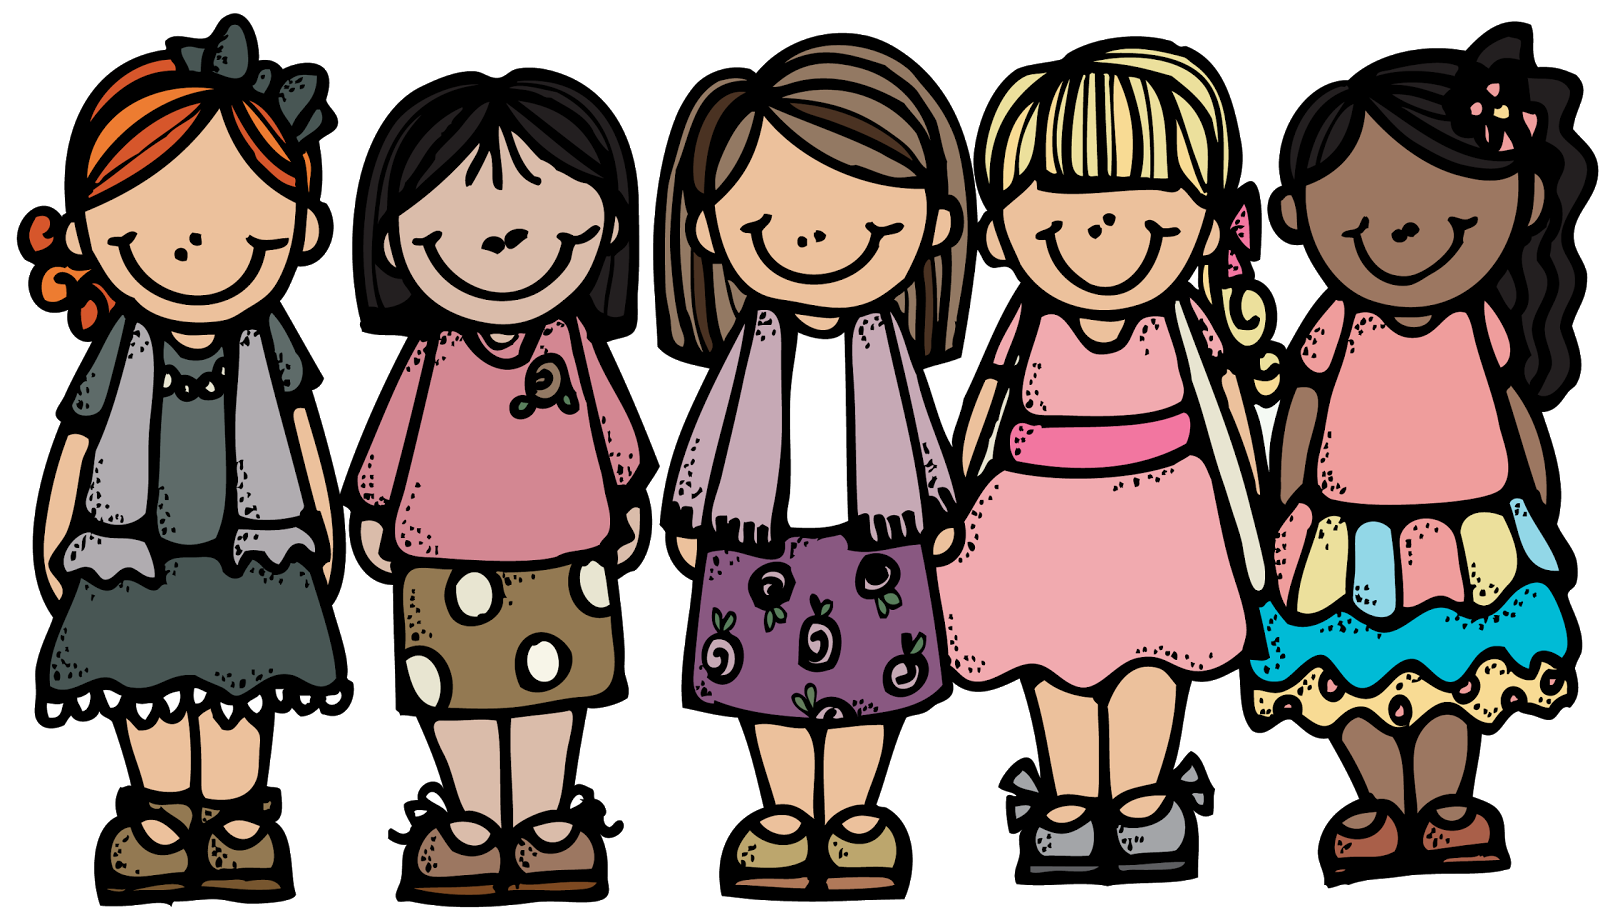 Conference clipart group counseling. Activity days girls melonheadz